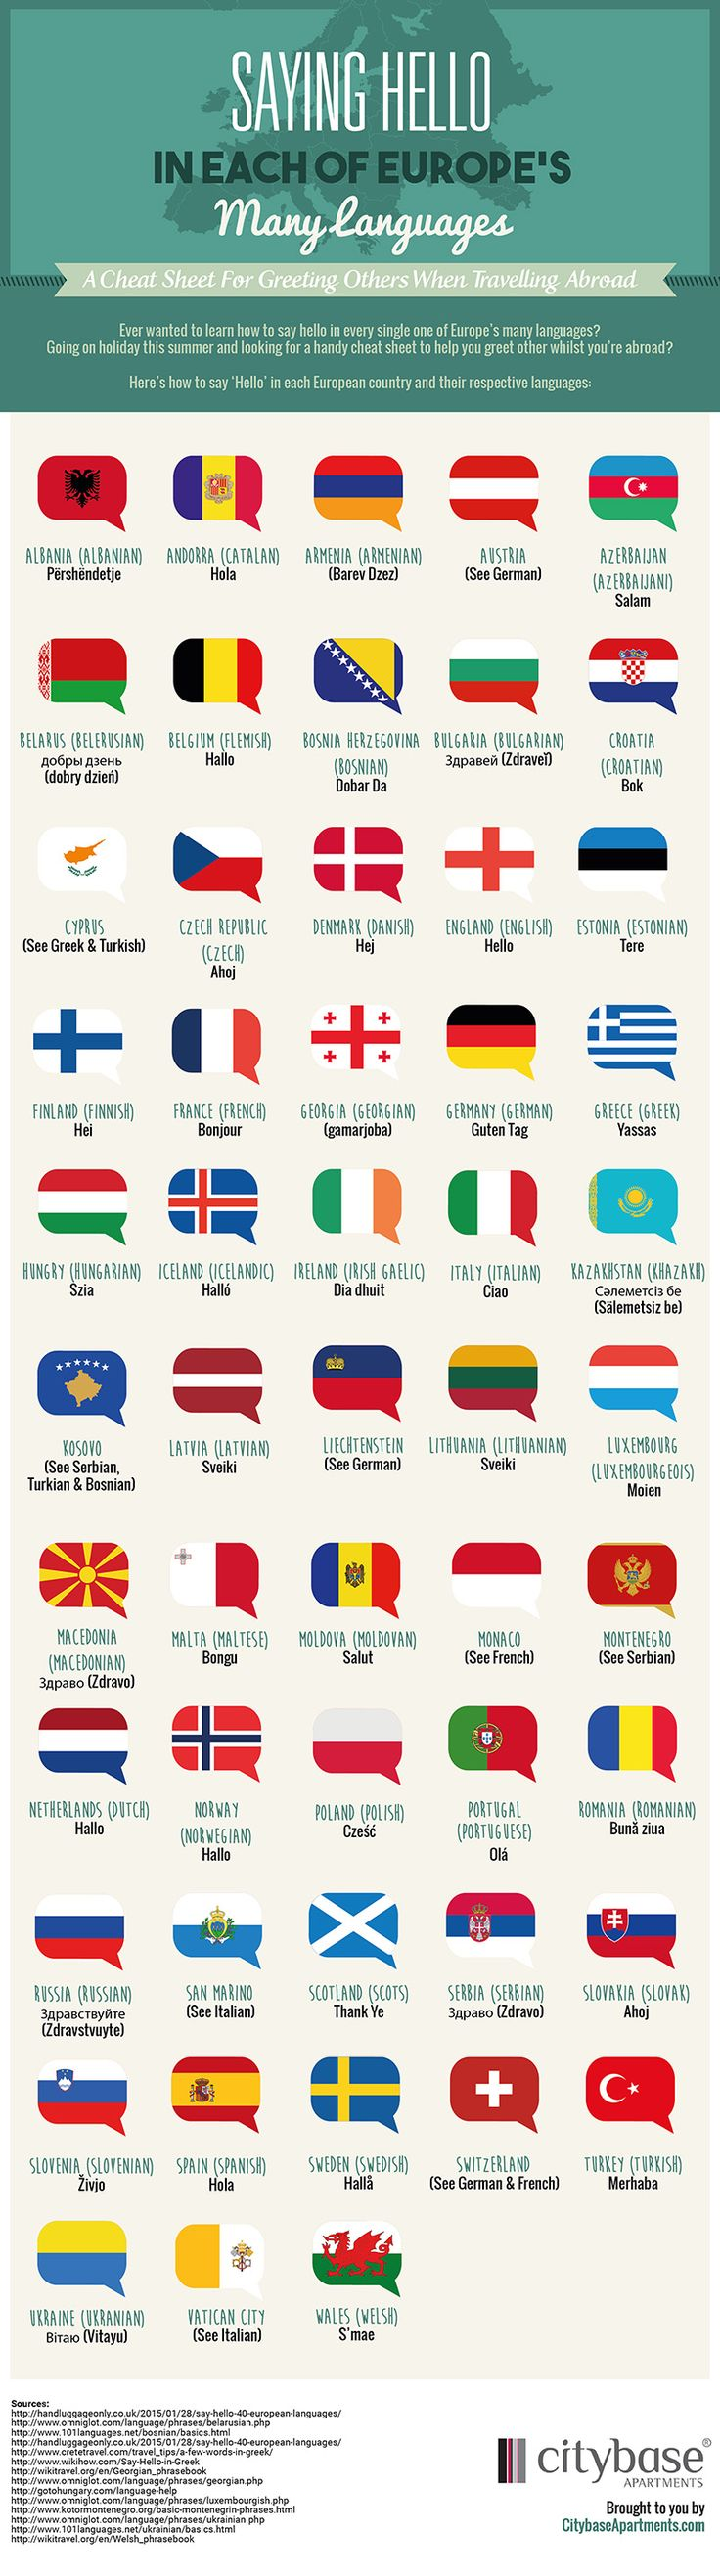 Saying Hello In Each of Europe's Many Languages #Infographic #Language #Travel